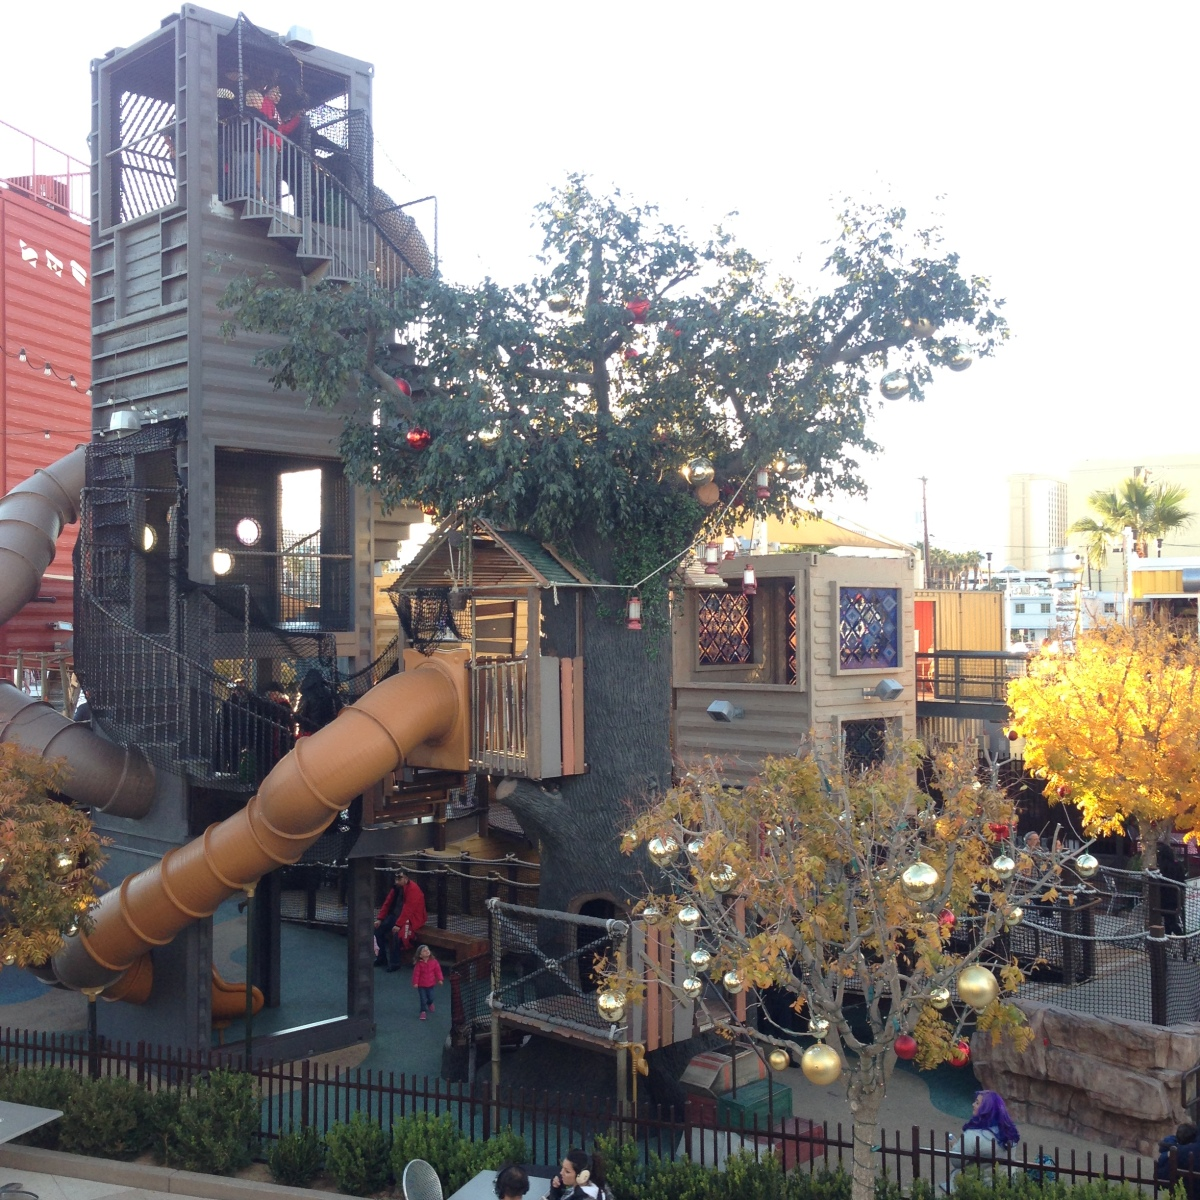 Attraktion, Touristenattraktion, Spielplatz, Las Vegas, Downtown, Containerpark